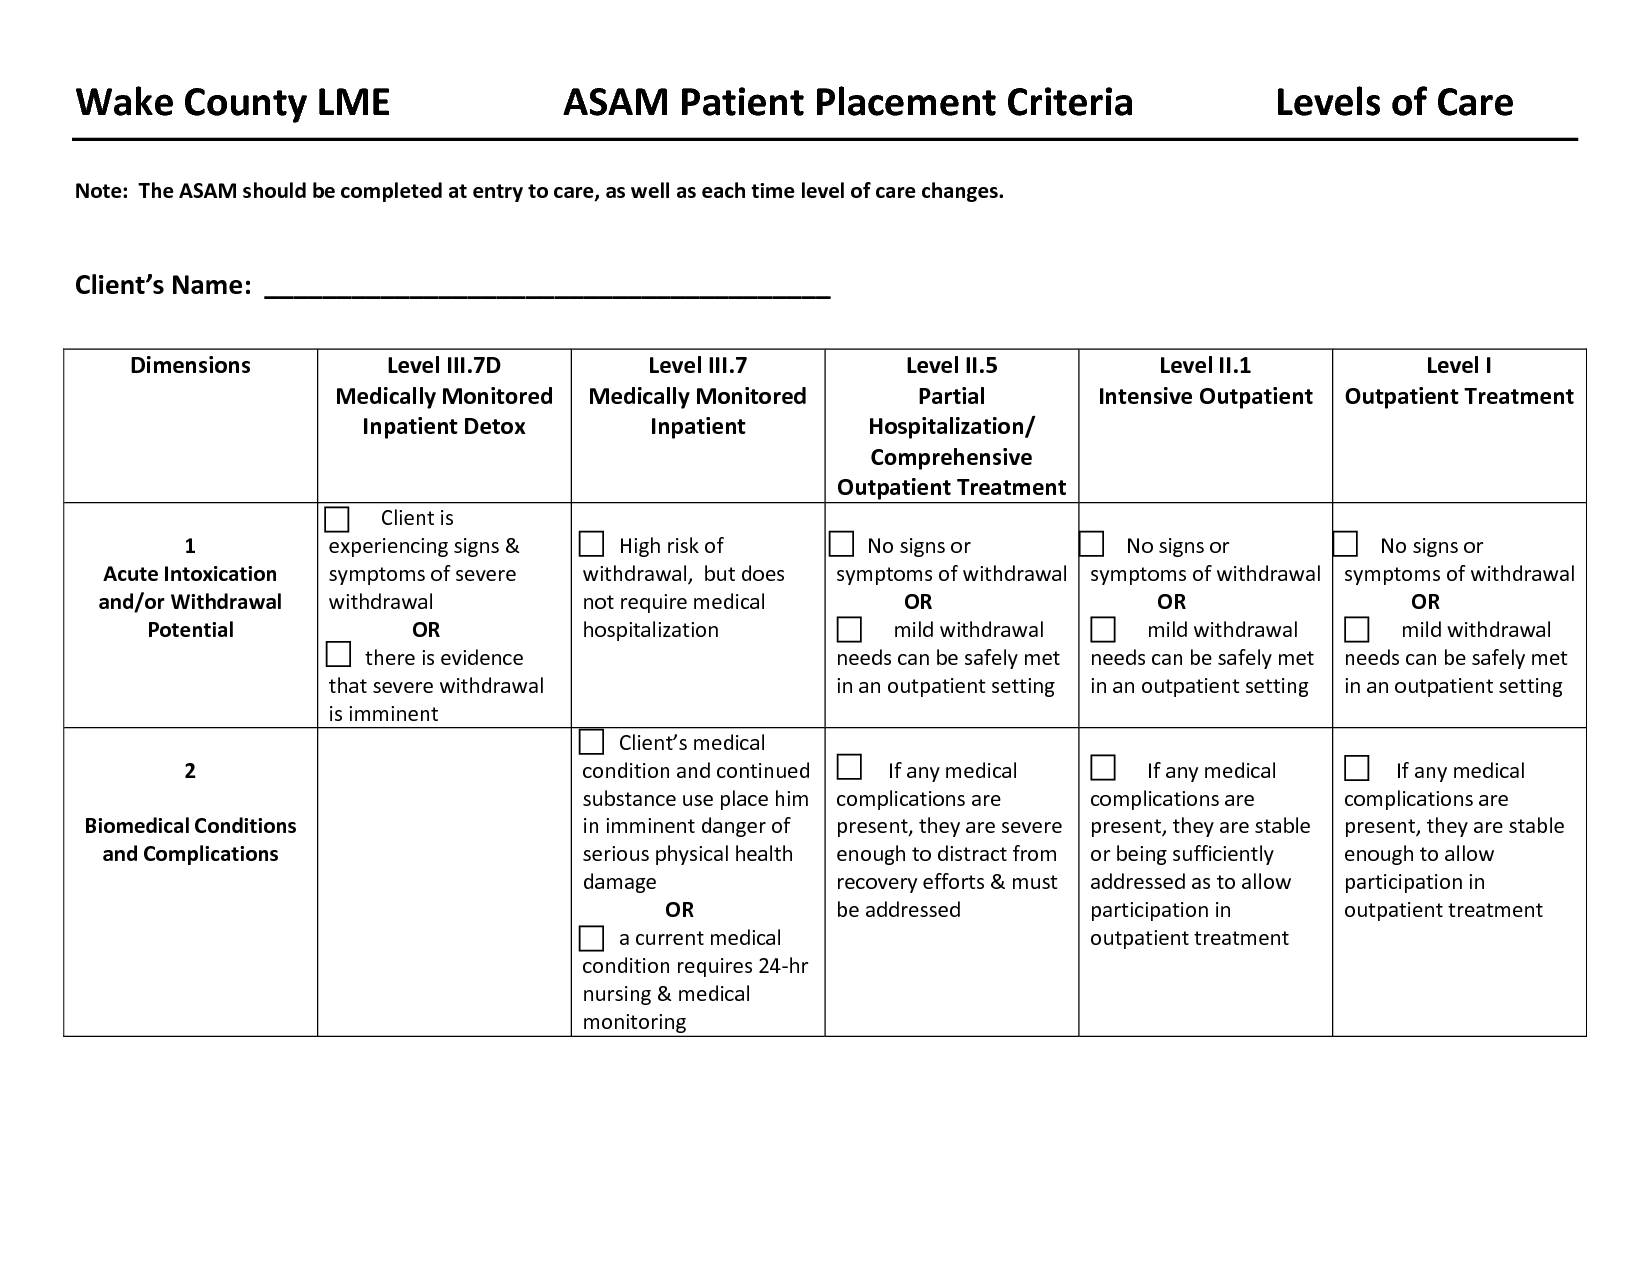 adatsa adult assessment chemical dependency form